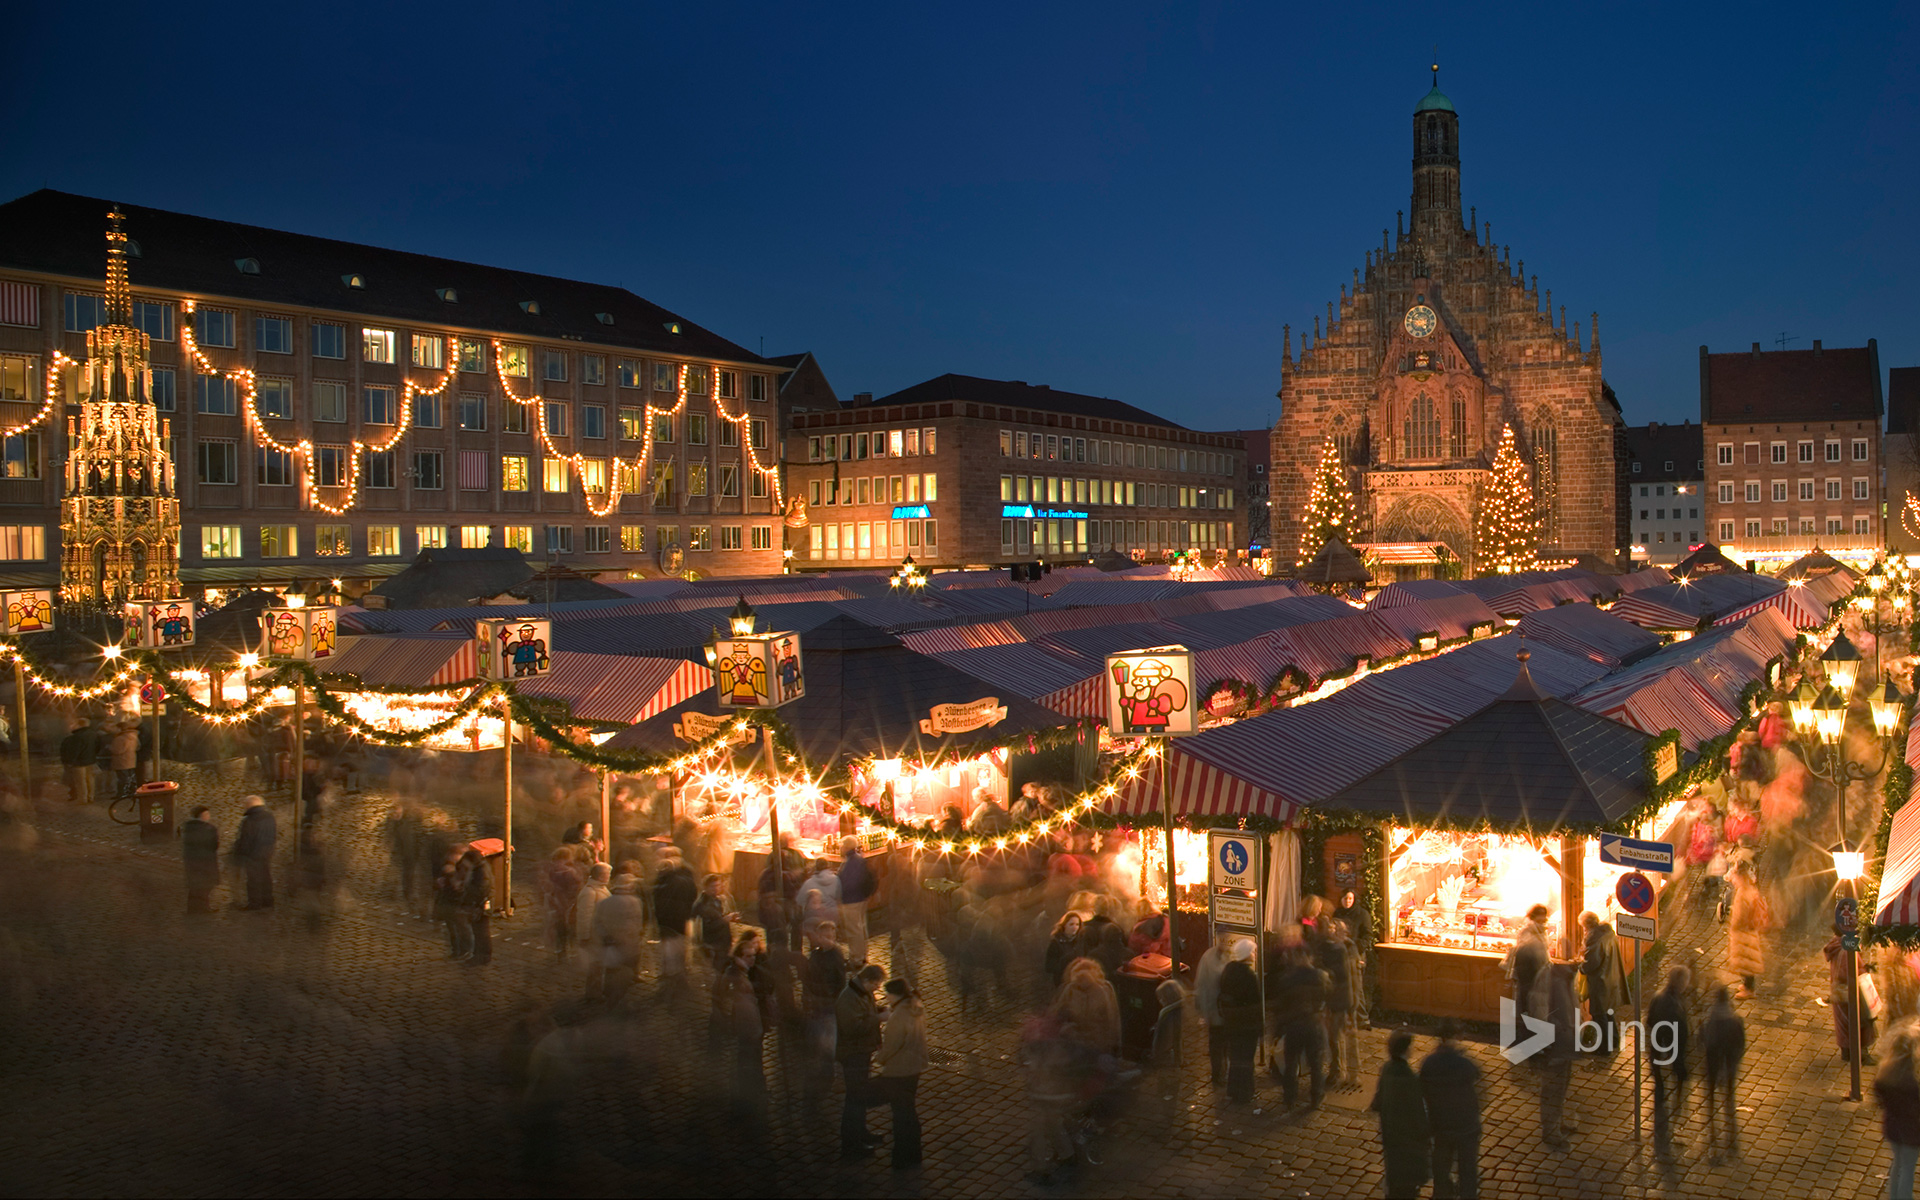 Panoramic view of the Christmas Market in Nuremberg, Bavaria, Germany